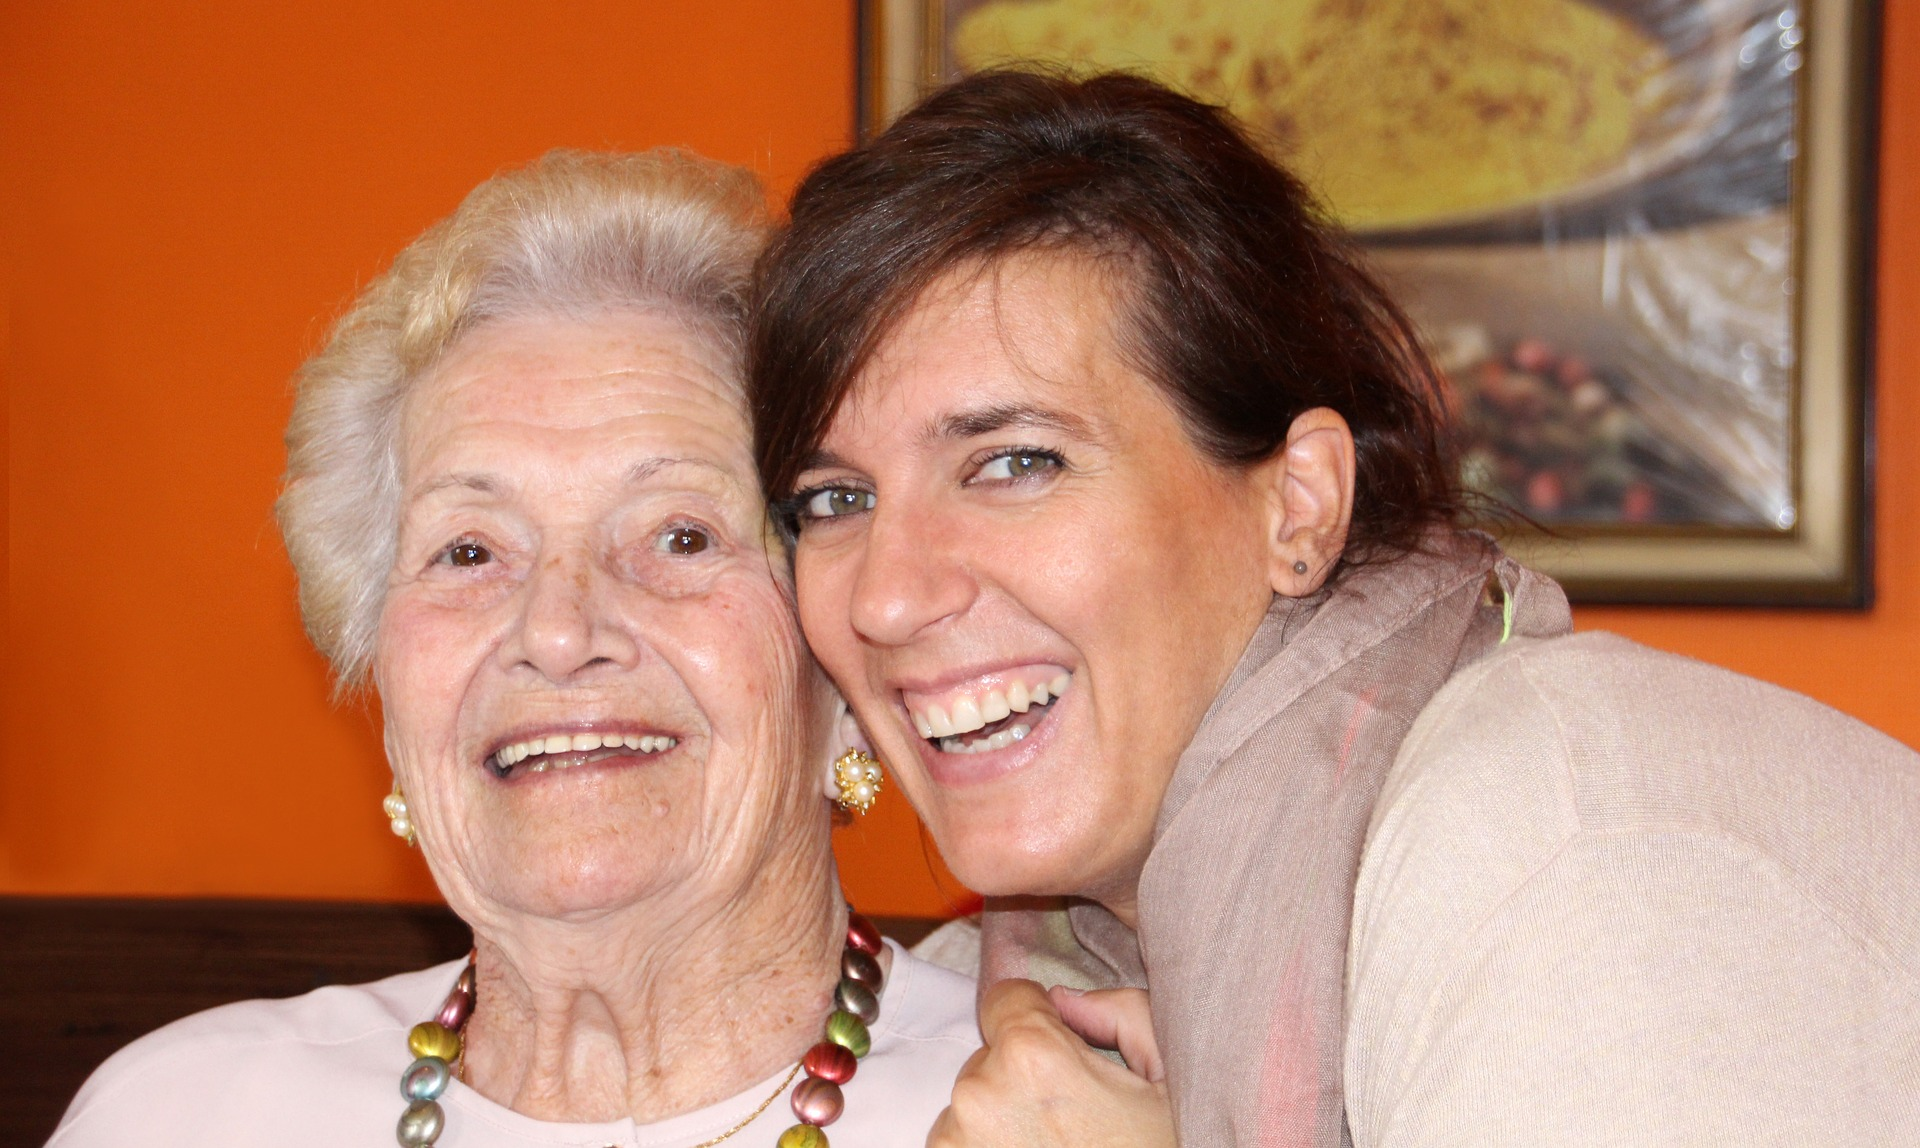 Alzheimer's disease can bring families together for support